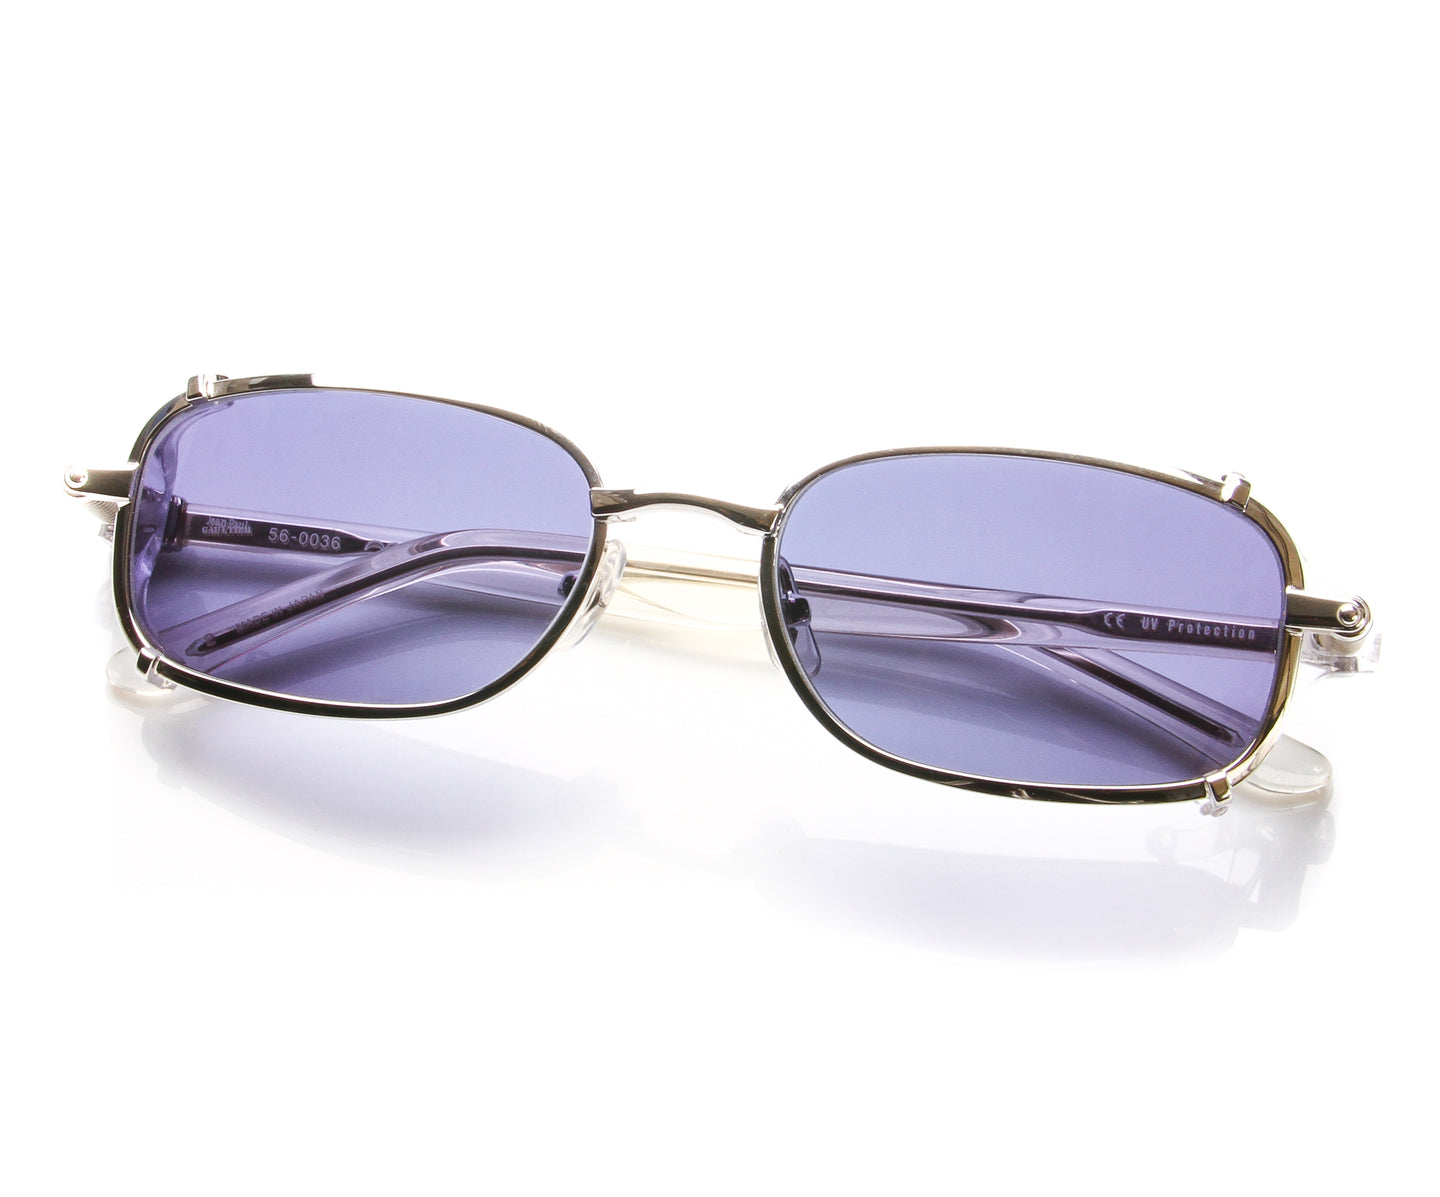 Jean Paul Gaultier 56 0036 2, Jean Paul Gaultier , glasses frames, eyeglasses online, eyeglass frames, mens glasses, womens glasses, buy glasses online, designer eyeglasses, vintage sunglasses, retro sunglasses, vintage glasses, sunglass, eyeglass, glasses, lens, vintage frames company, vf